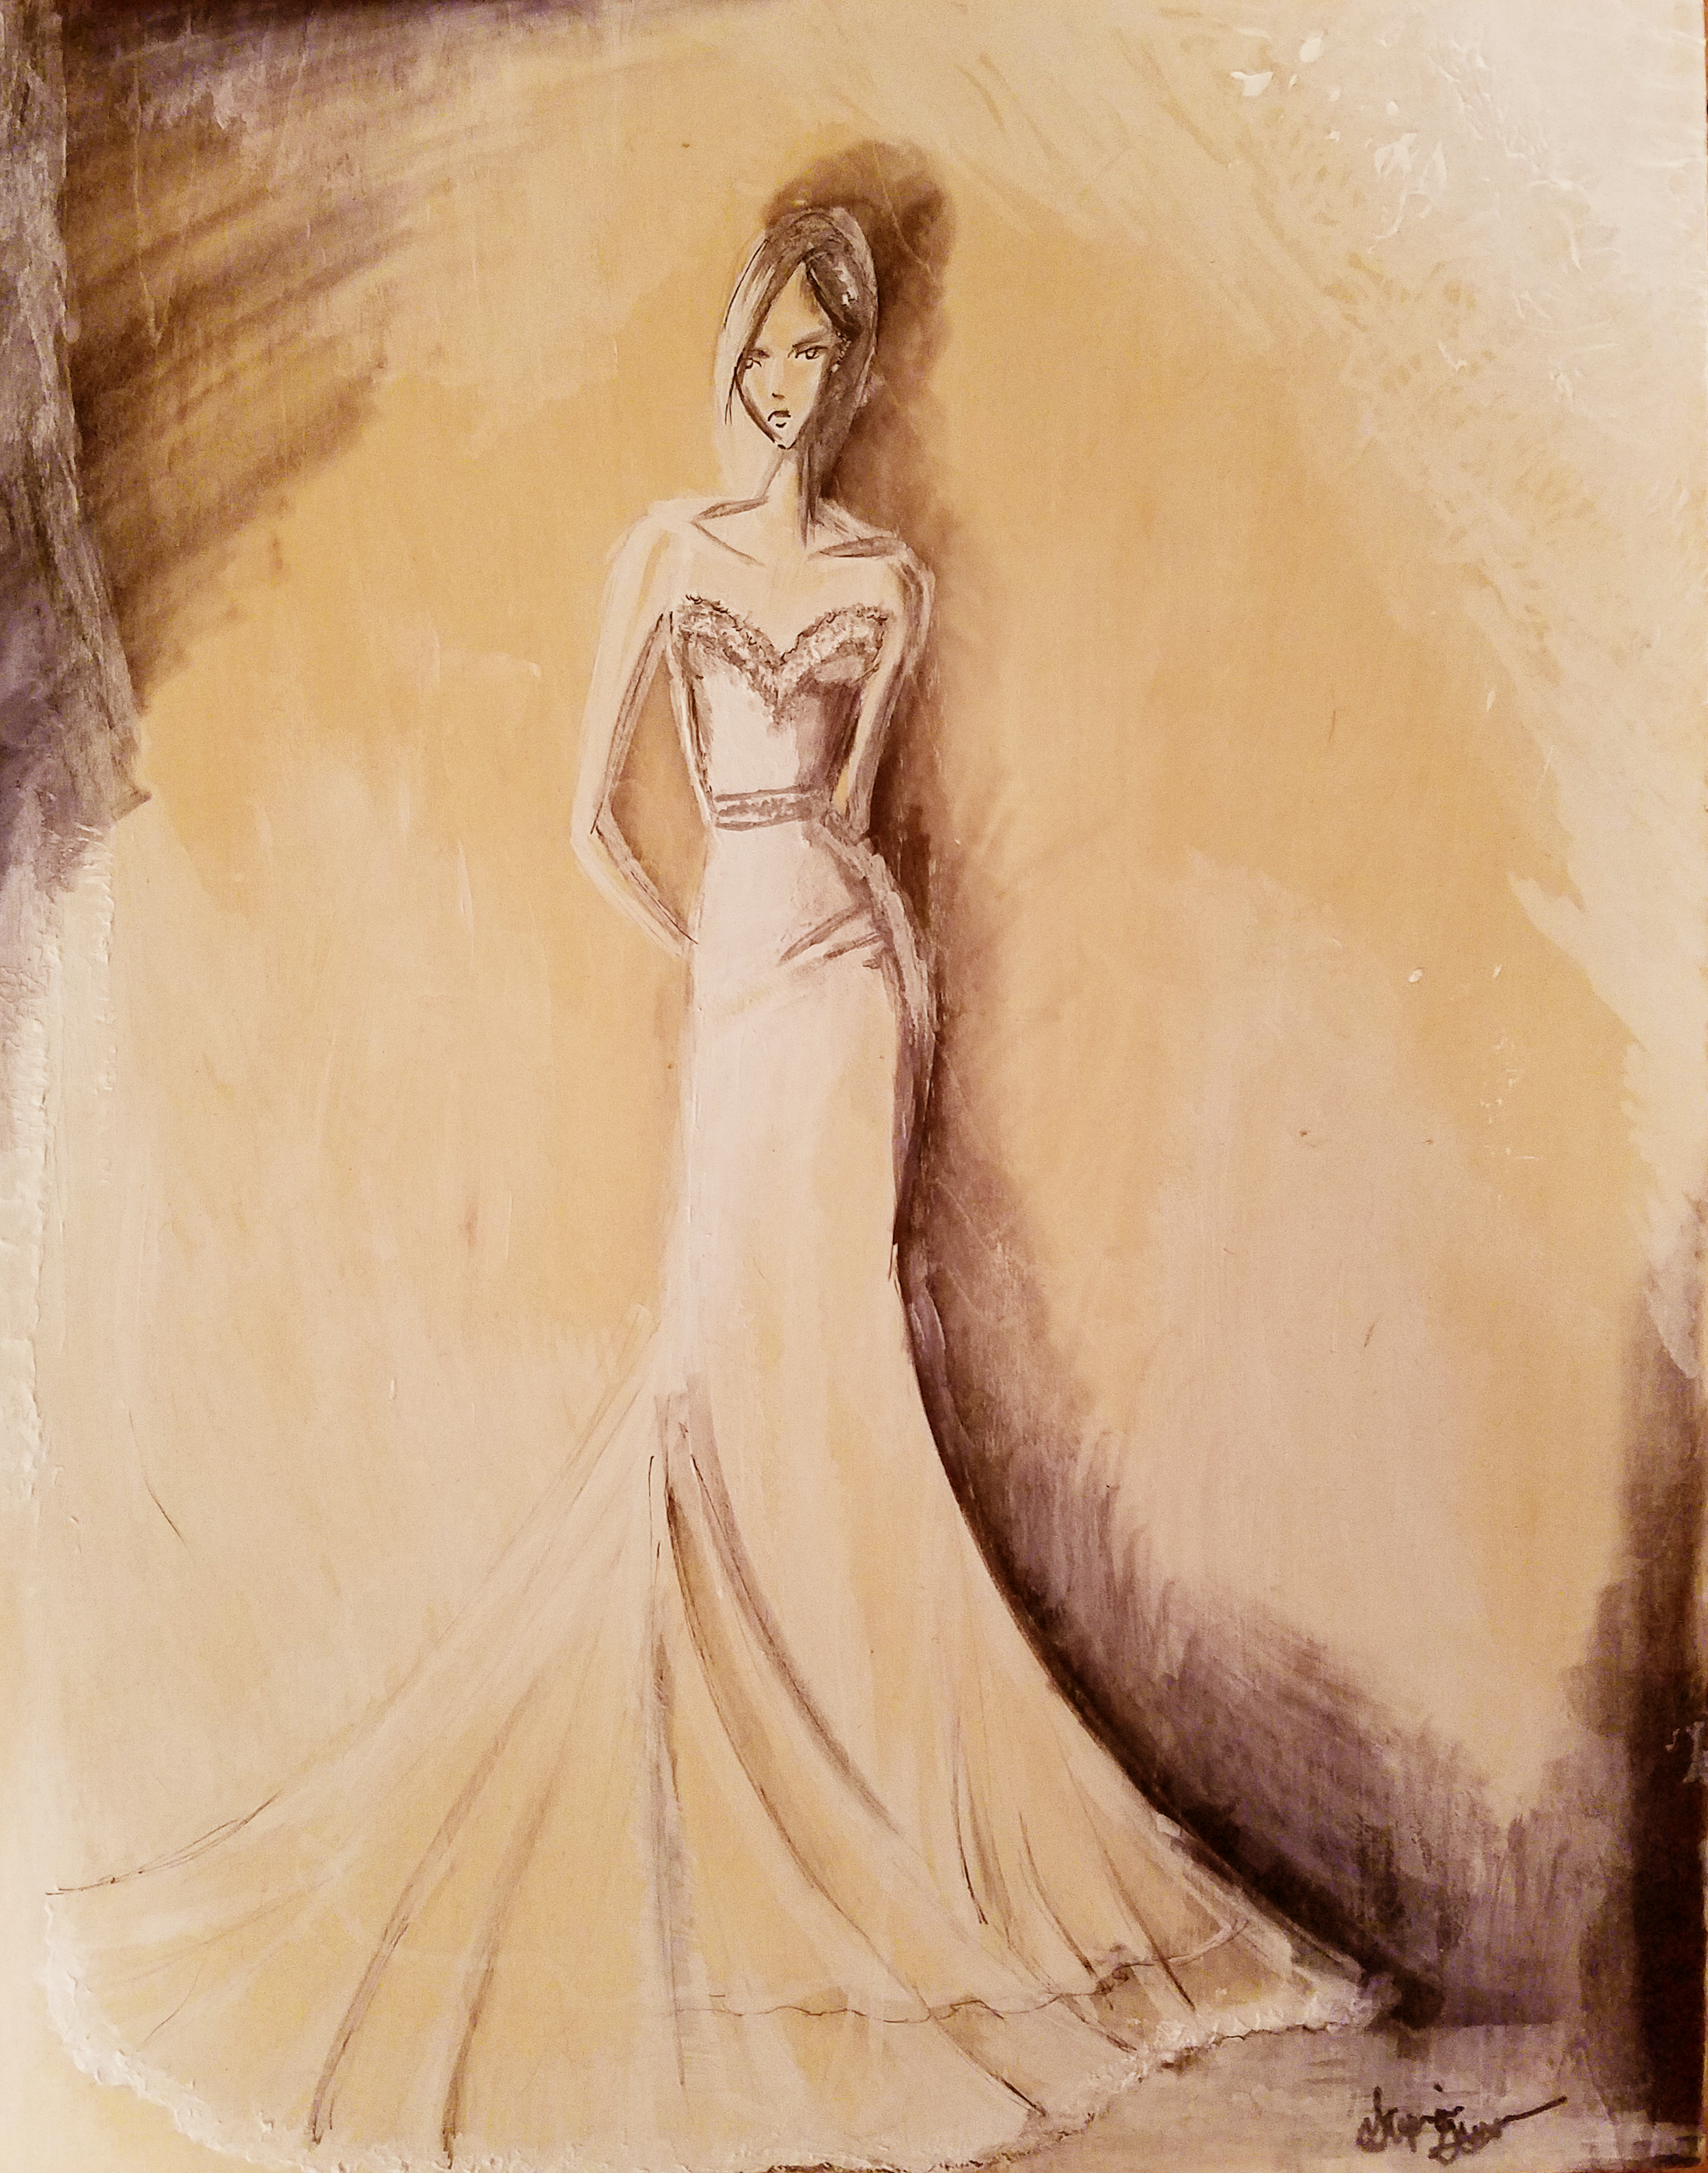 Event Inspiration: Mixed media on Birch wood Panel 11x14 or larger. Painting live at the wedding!